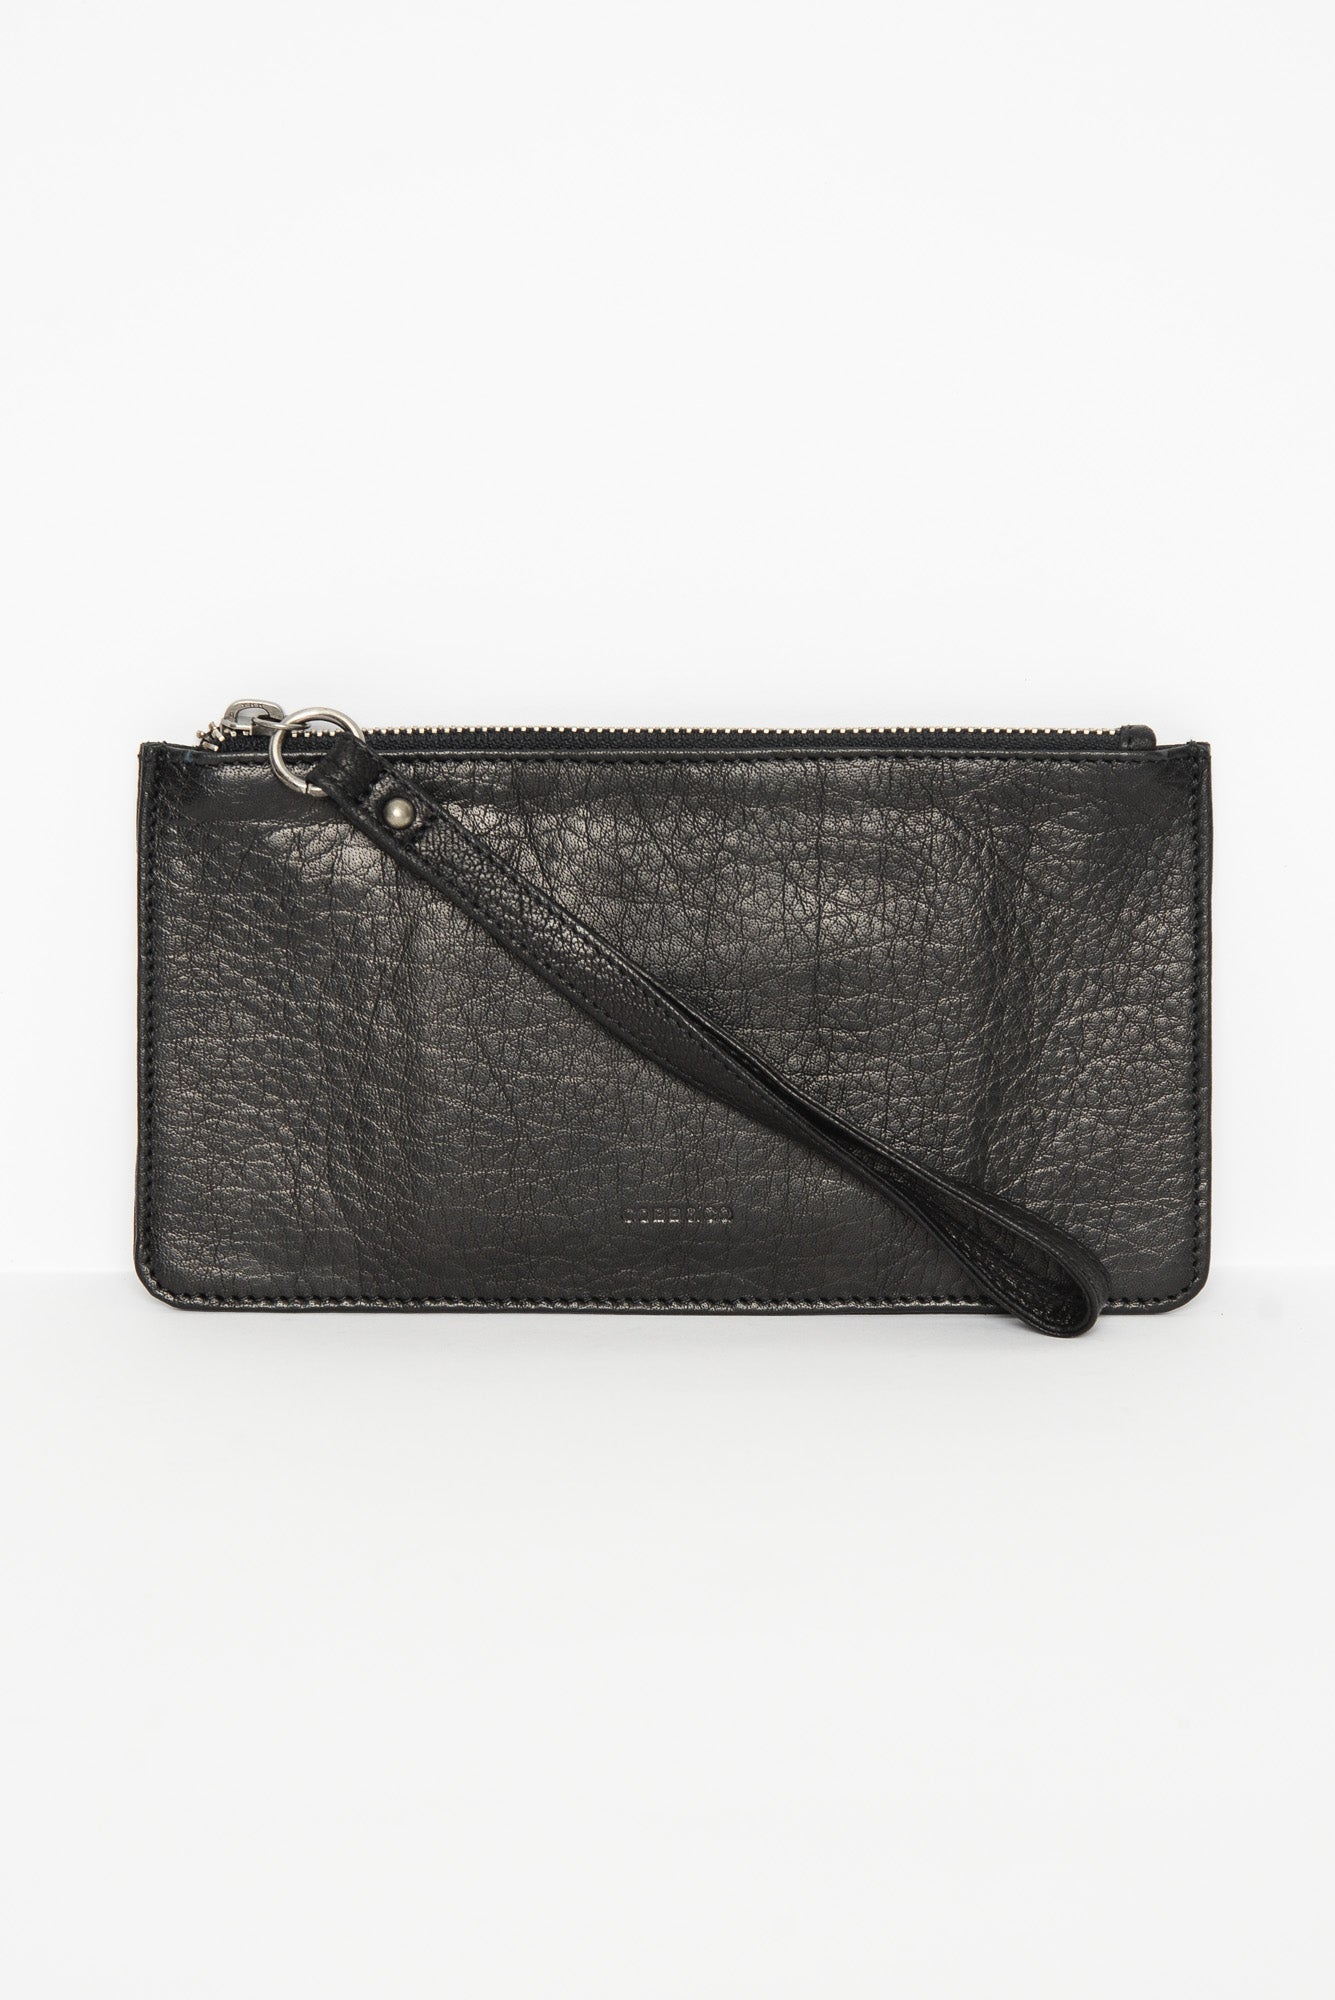 Vaucluse Black Leather Medium Pouch